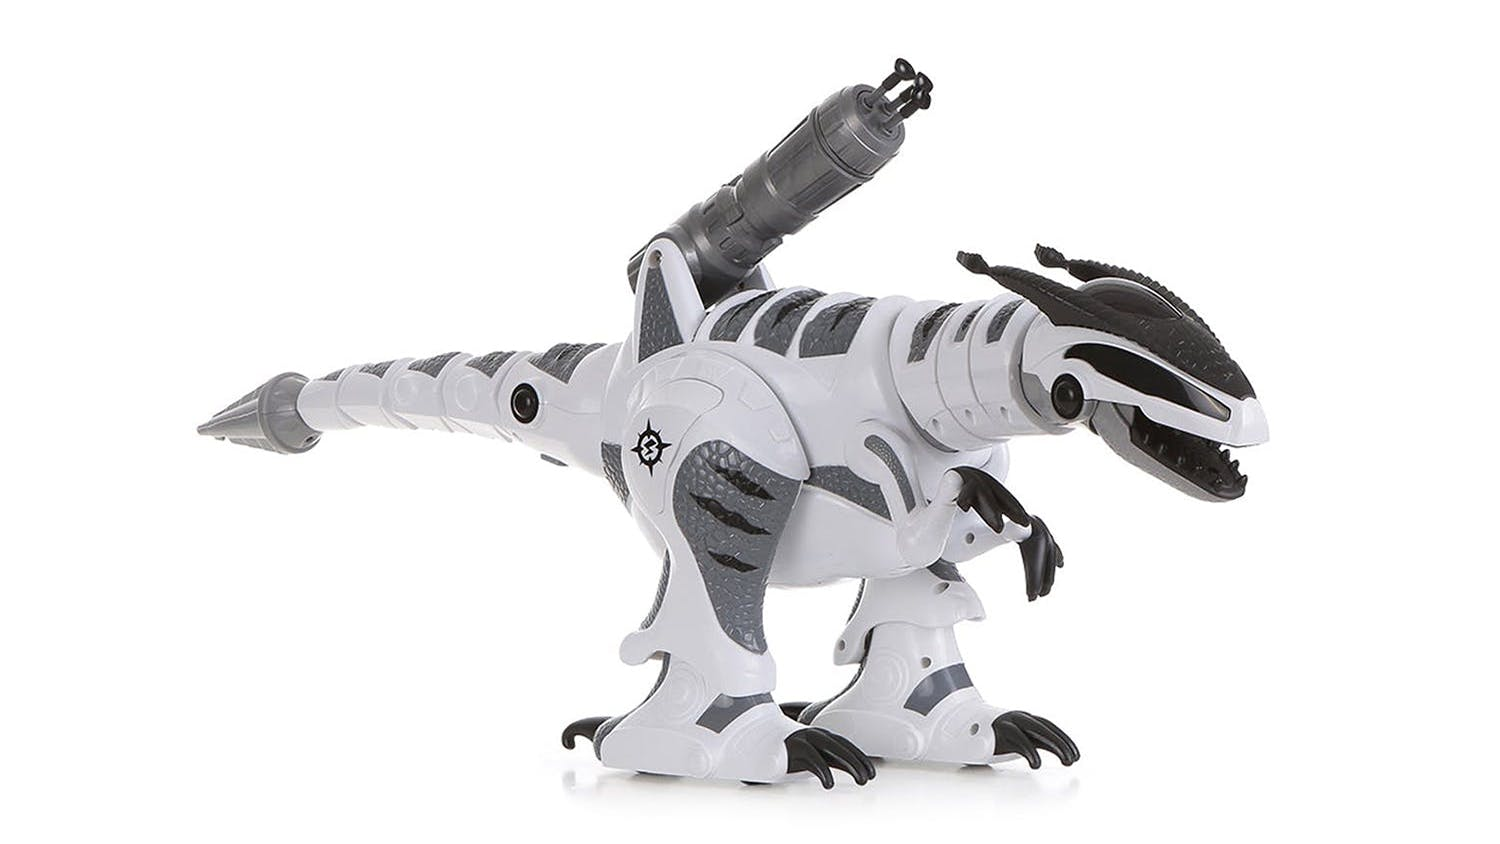 K9 Intelligent RC Dinosaur Robot